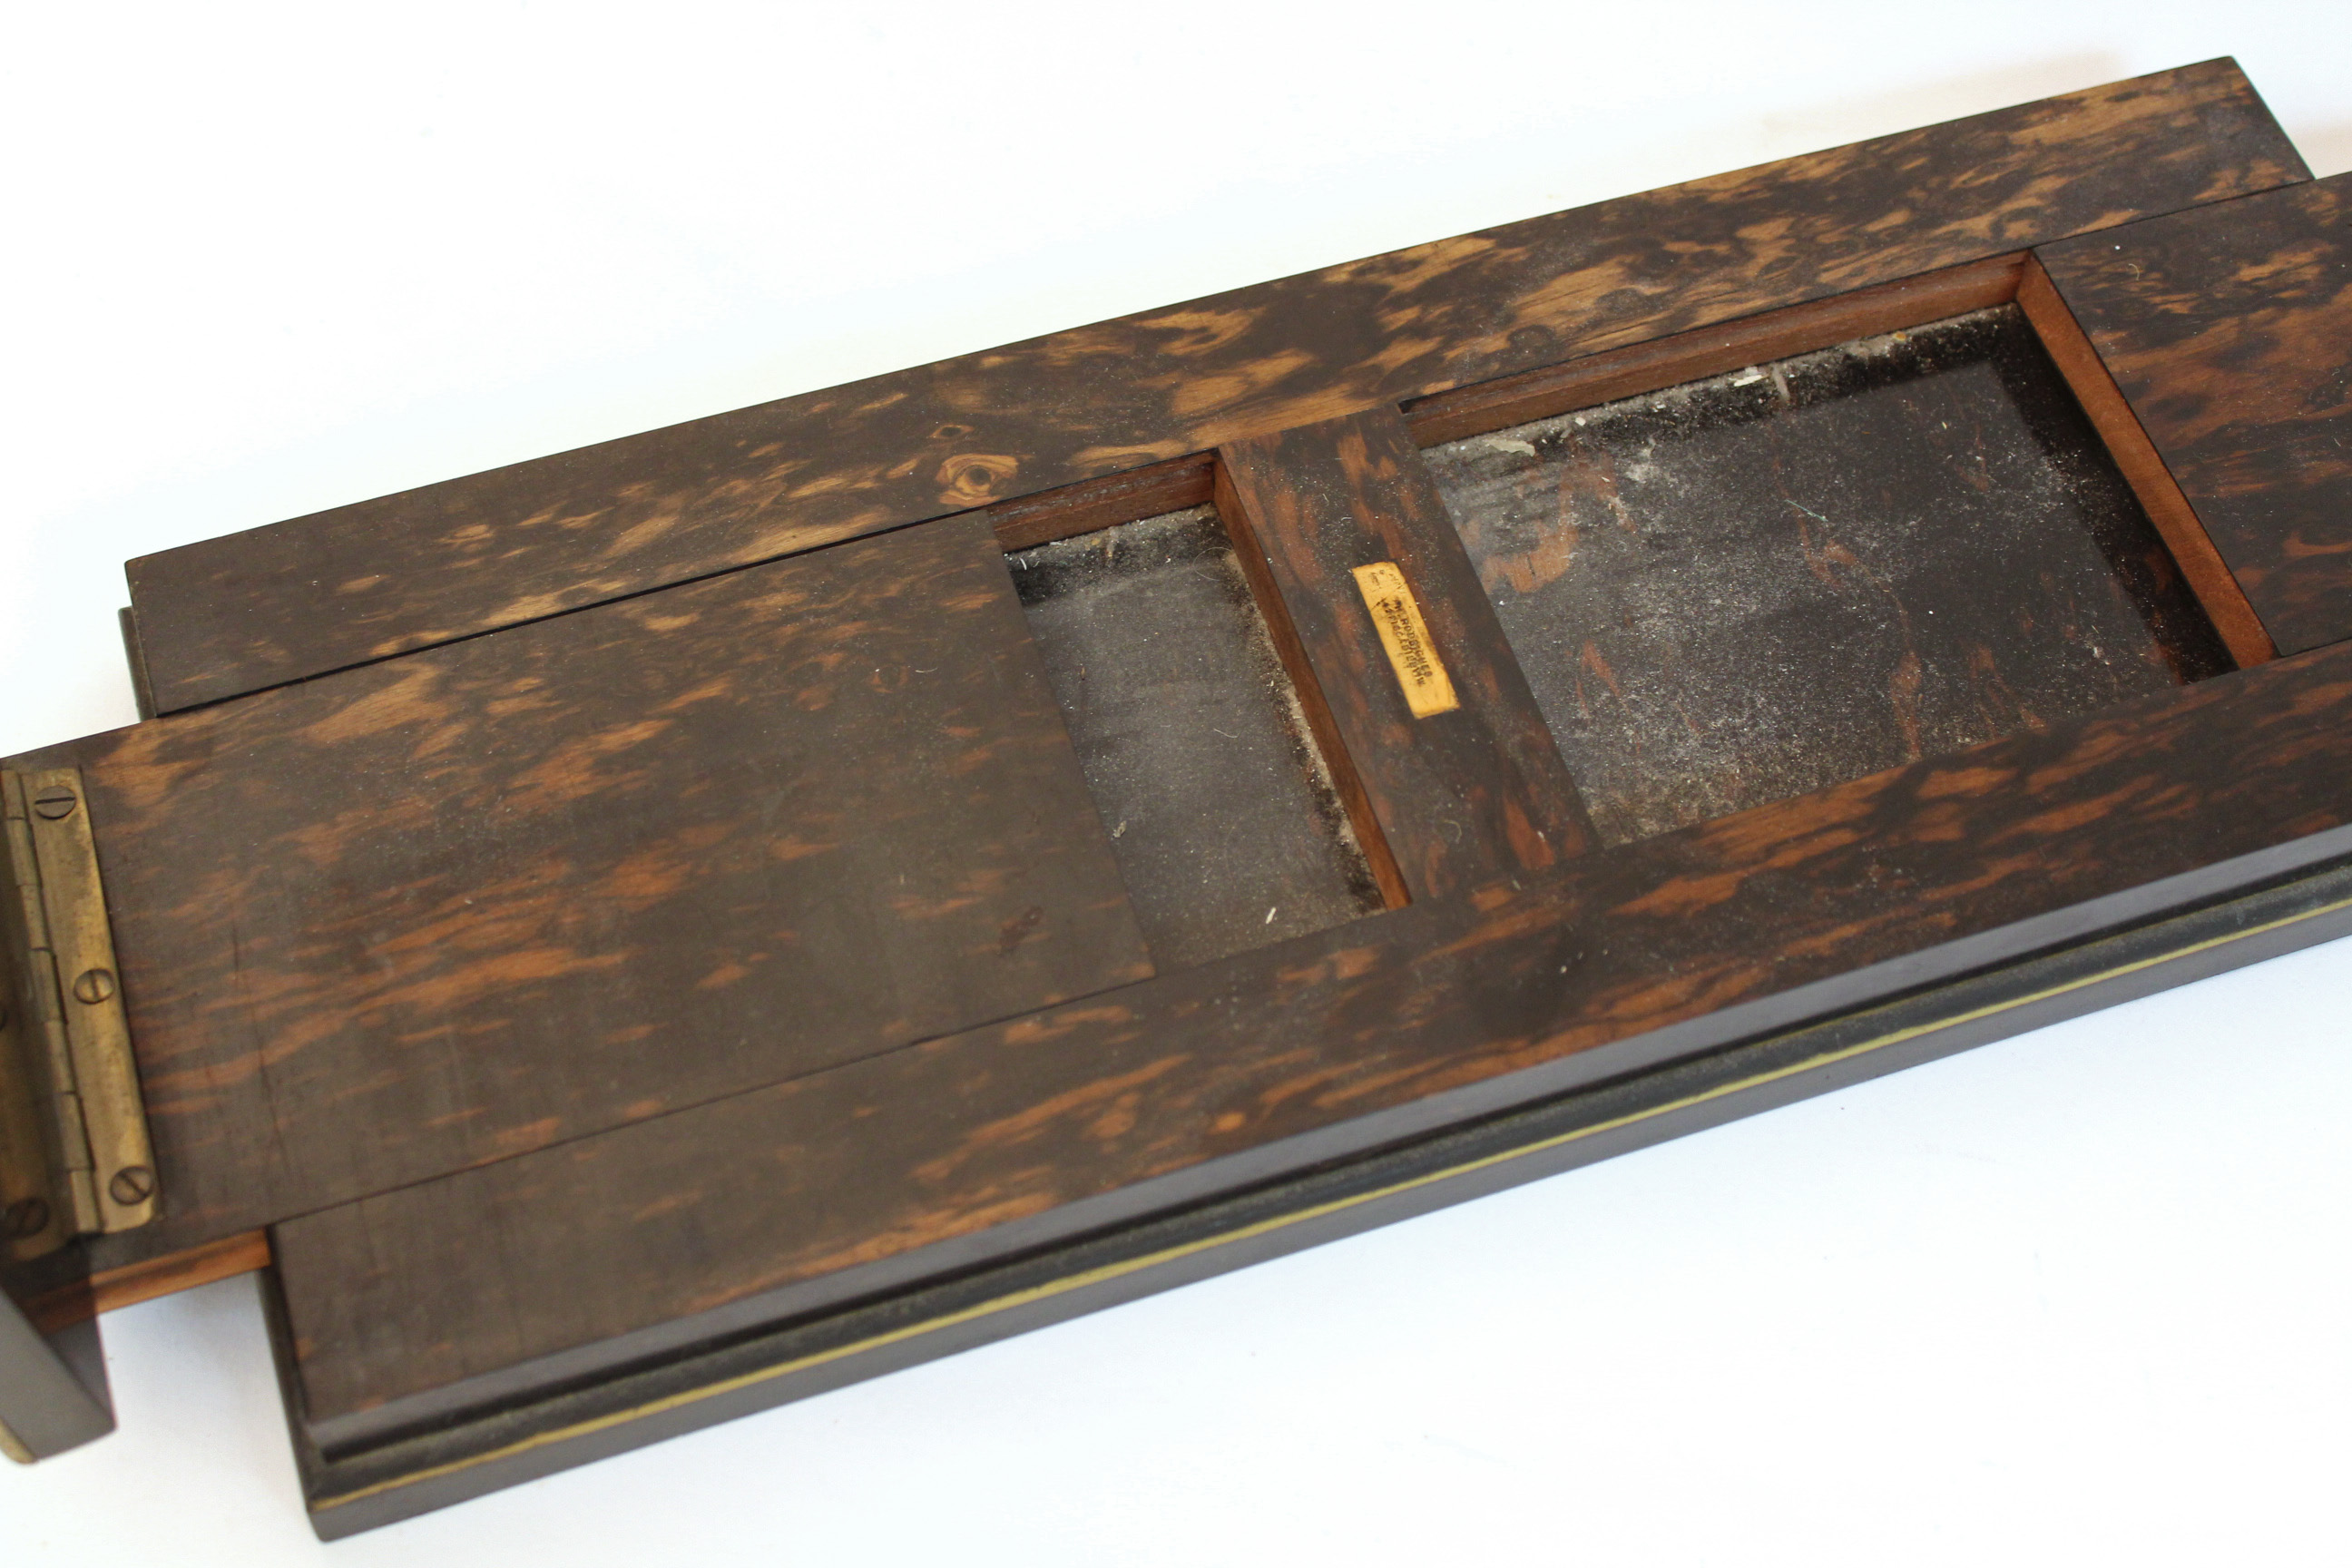 Lot 167 - A set of 19th century coromandel & brass-mounted book-ends by H. Rodrigues, 42, Piccadilly, the